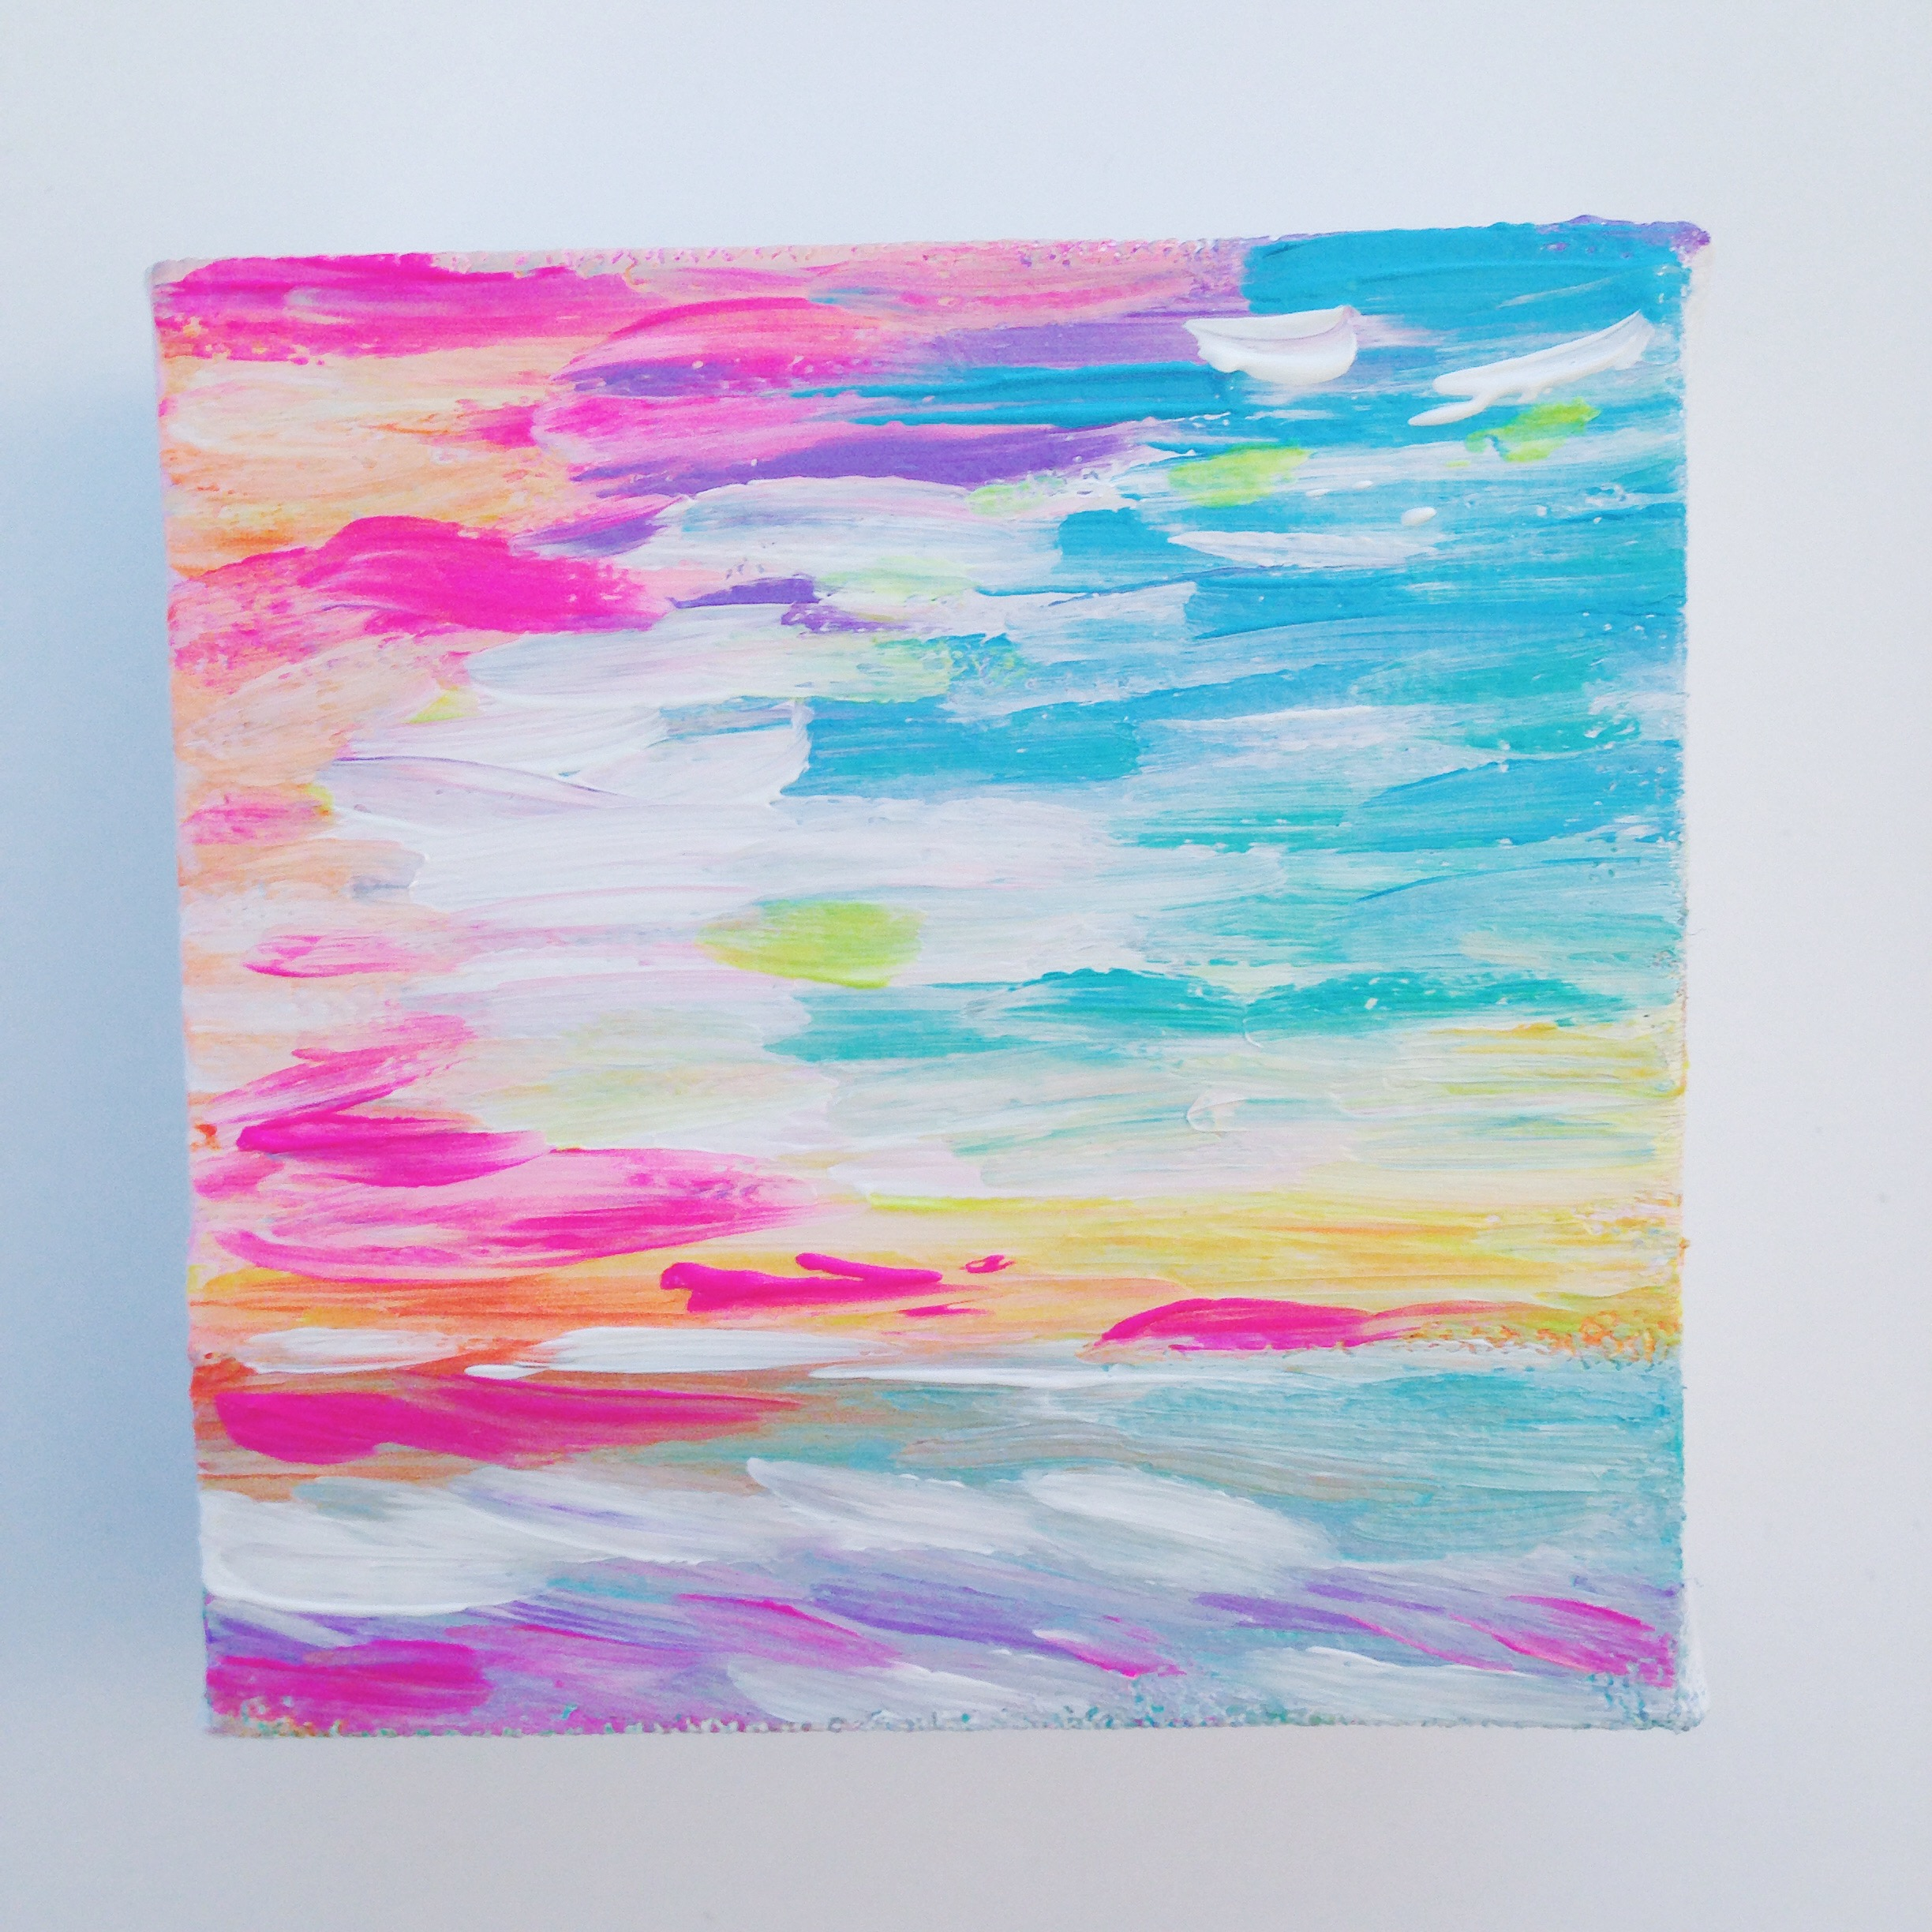 Neon Sunset Seascape   Acrylic Painting by Hello Monday Design